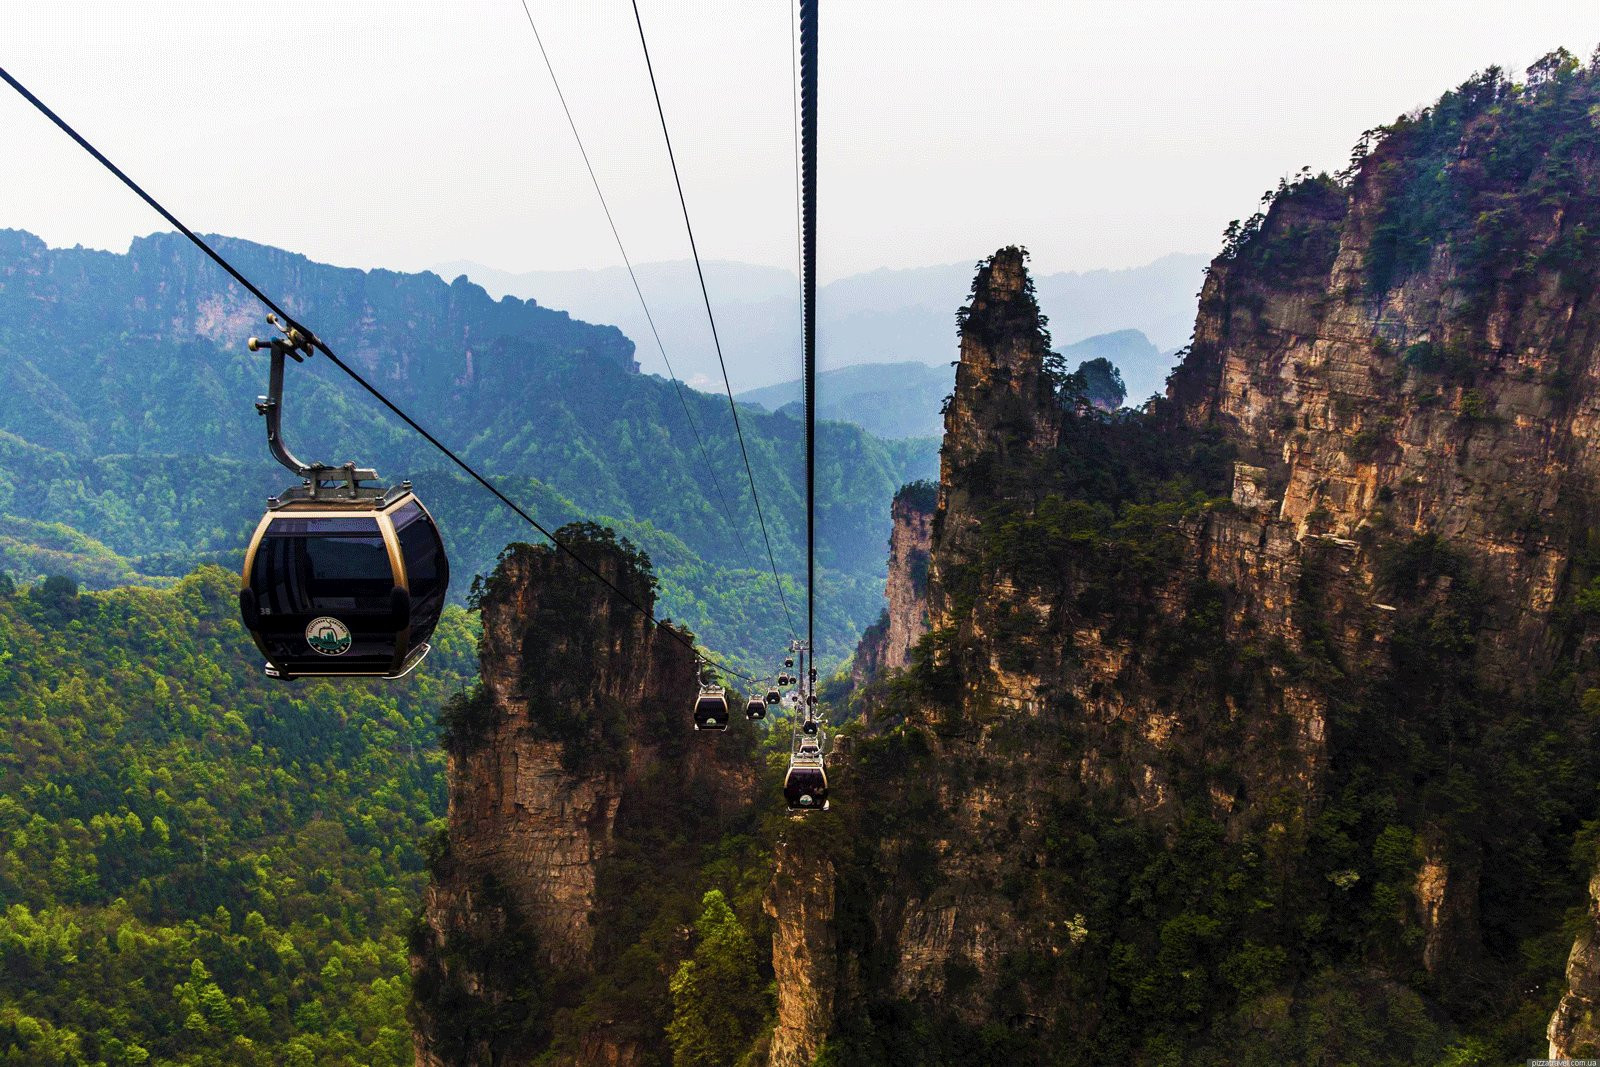 How to take a ride on the world's longest cable car in Zhangjiajie